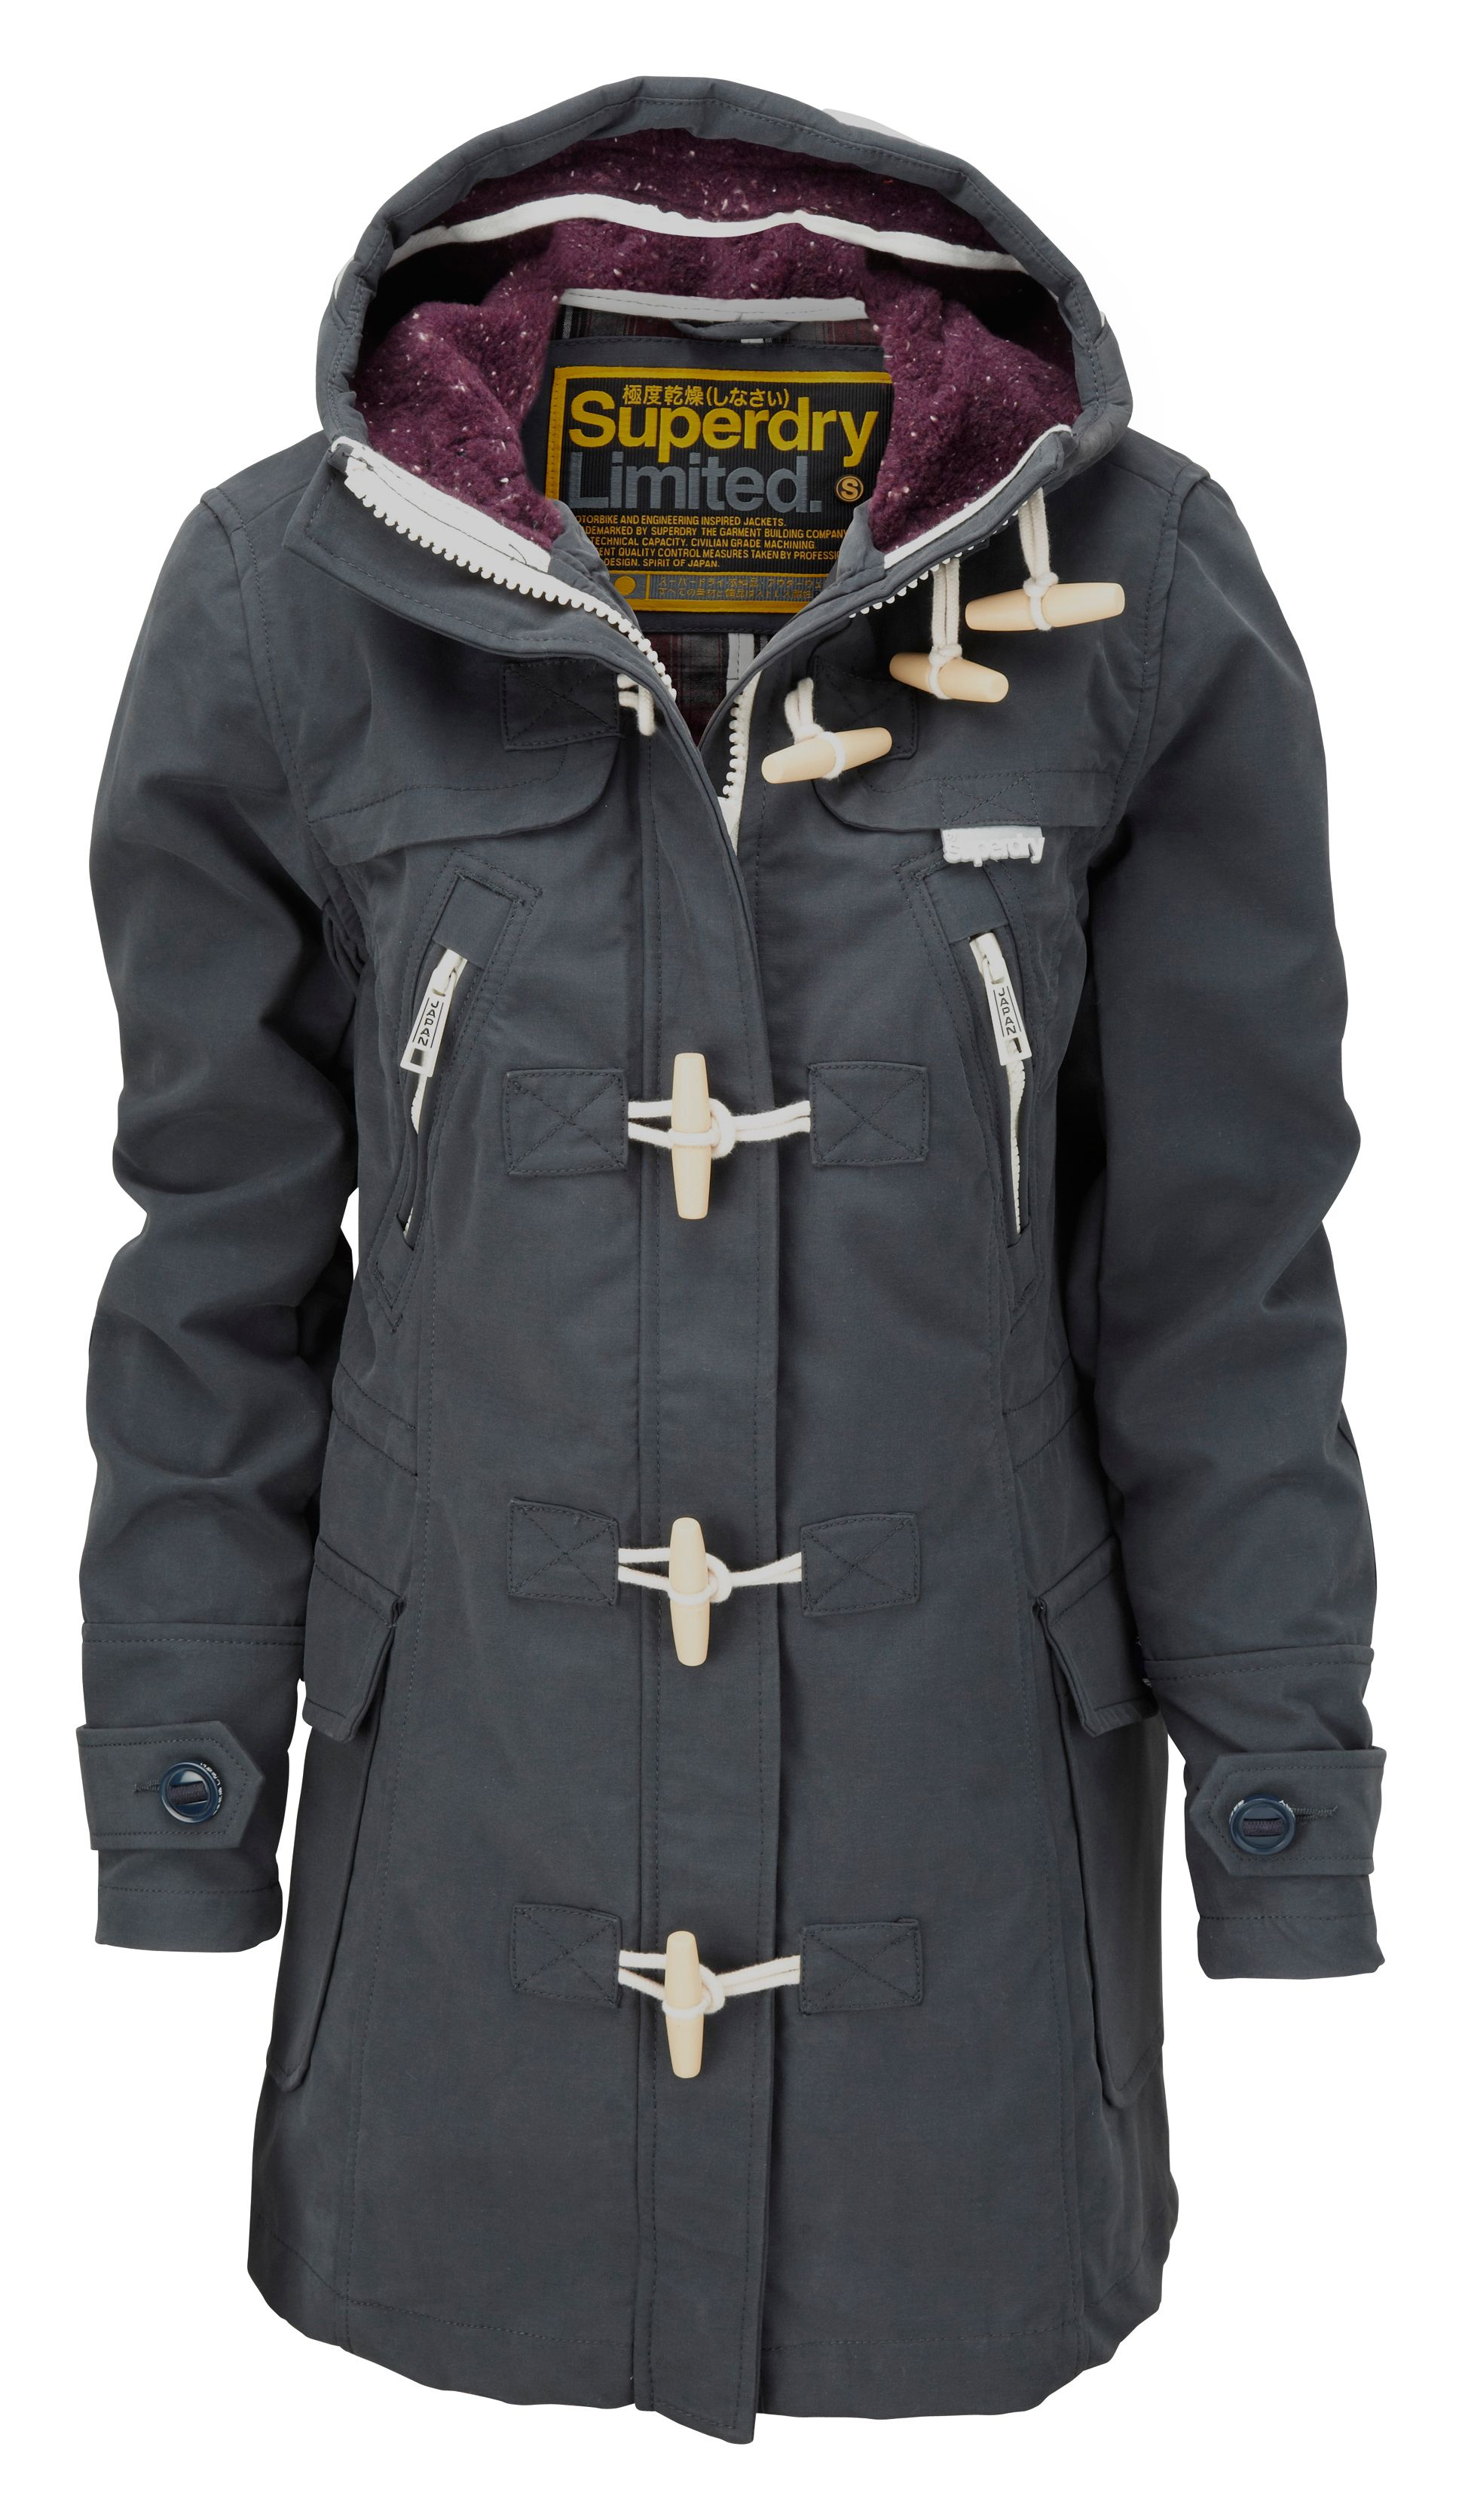 Harbour duffle coat